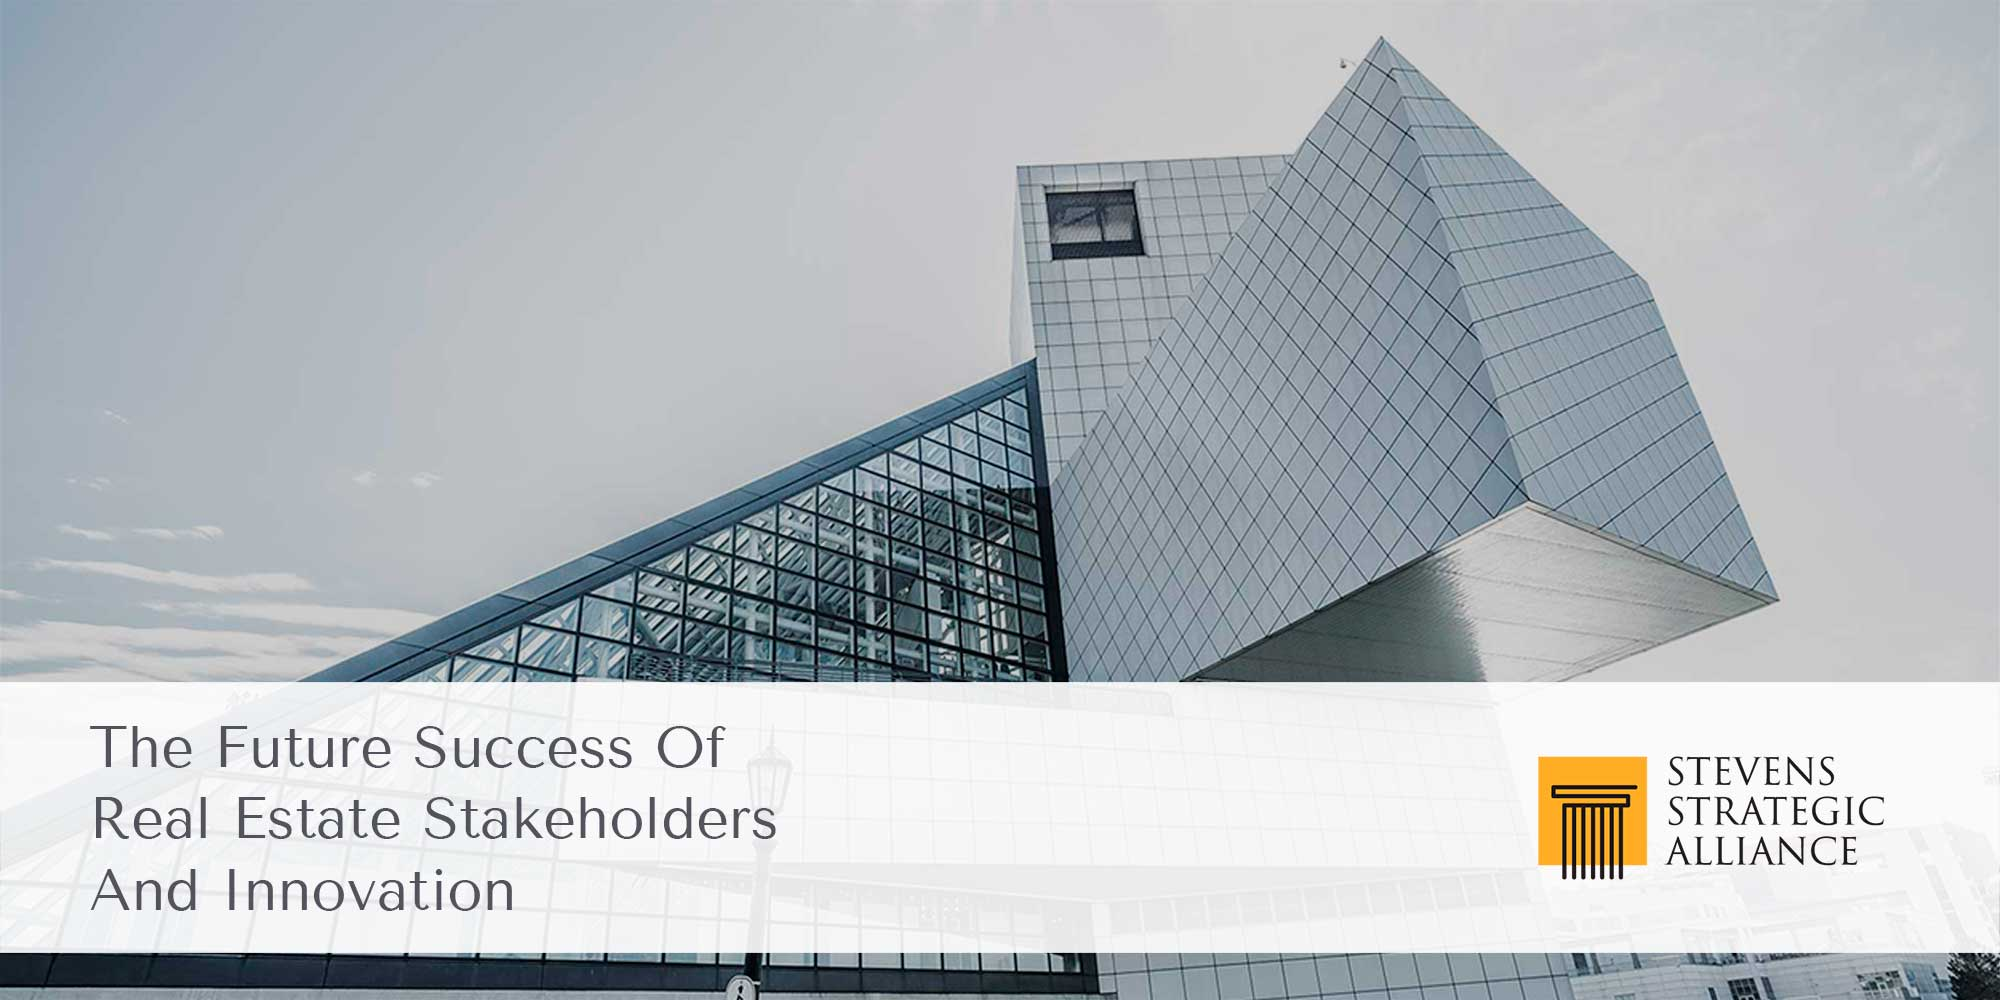 The Future Success of Real Estate Stakeholders and Innovation